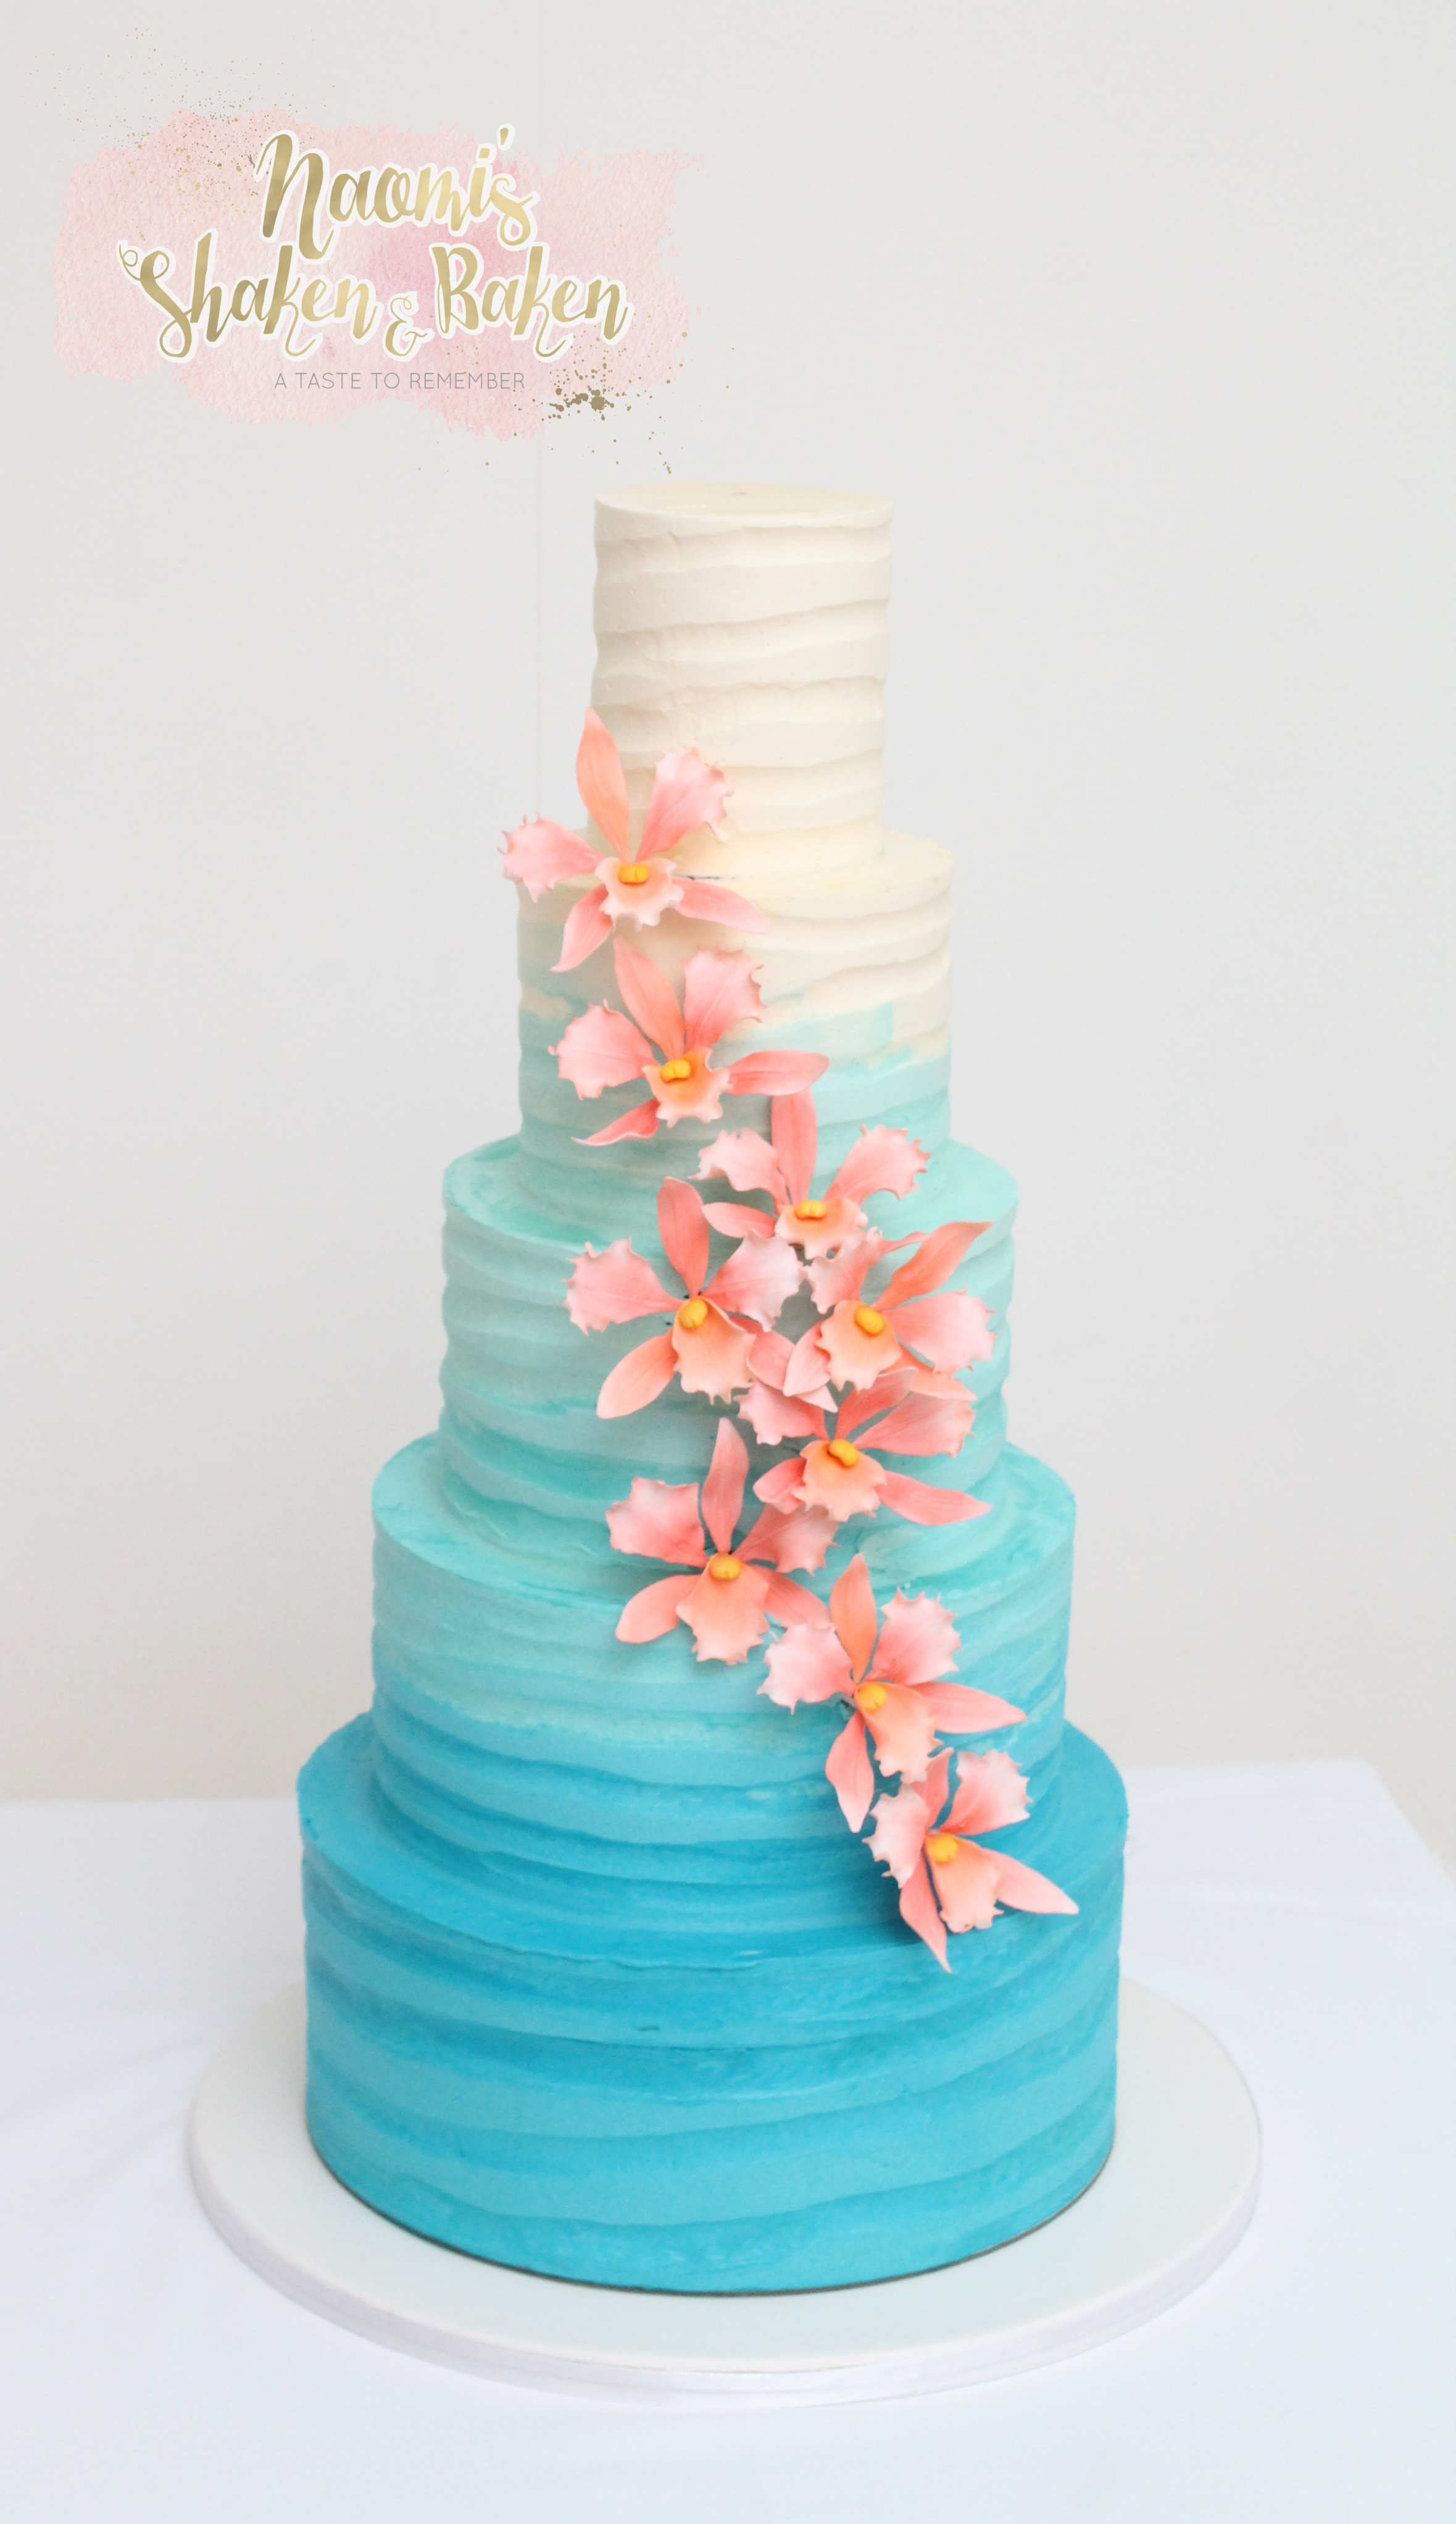 Ombre 5 tier wedding cake